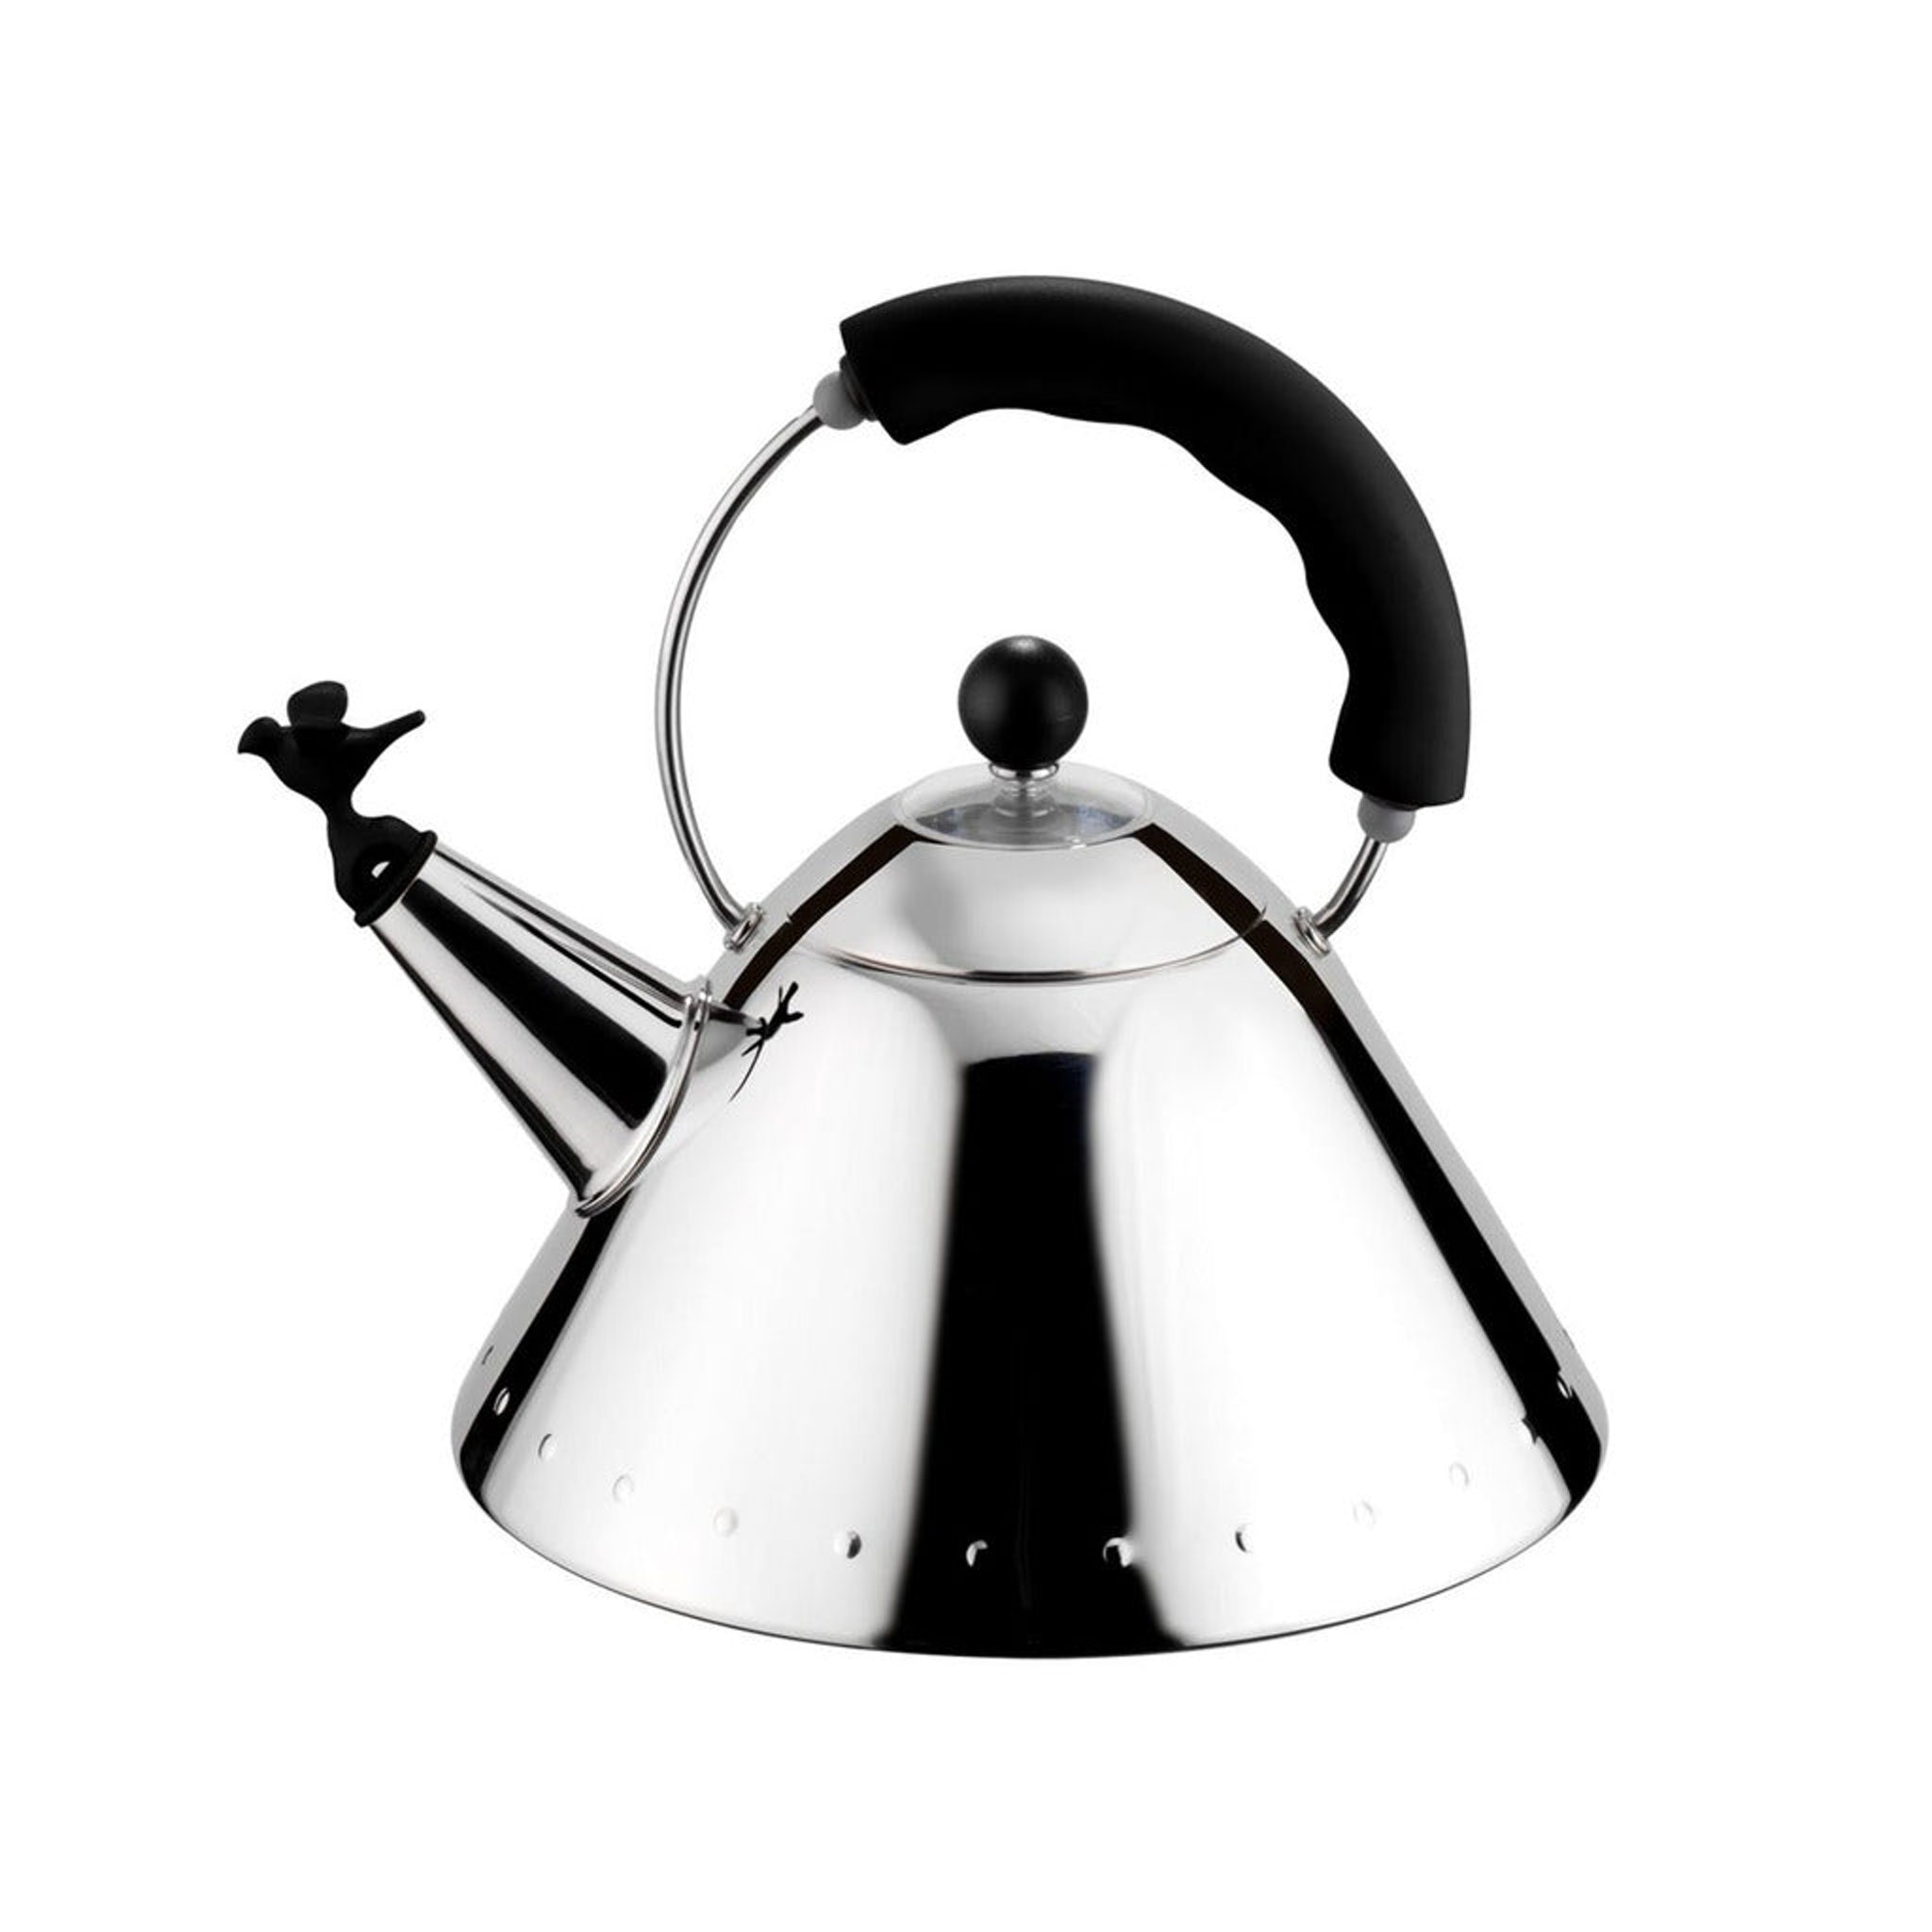 Bird Kettle by Alessi